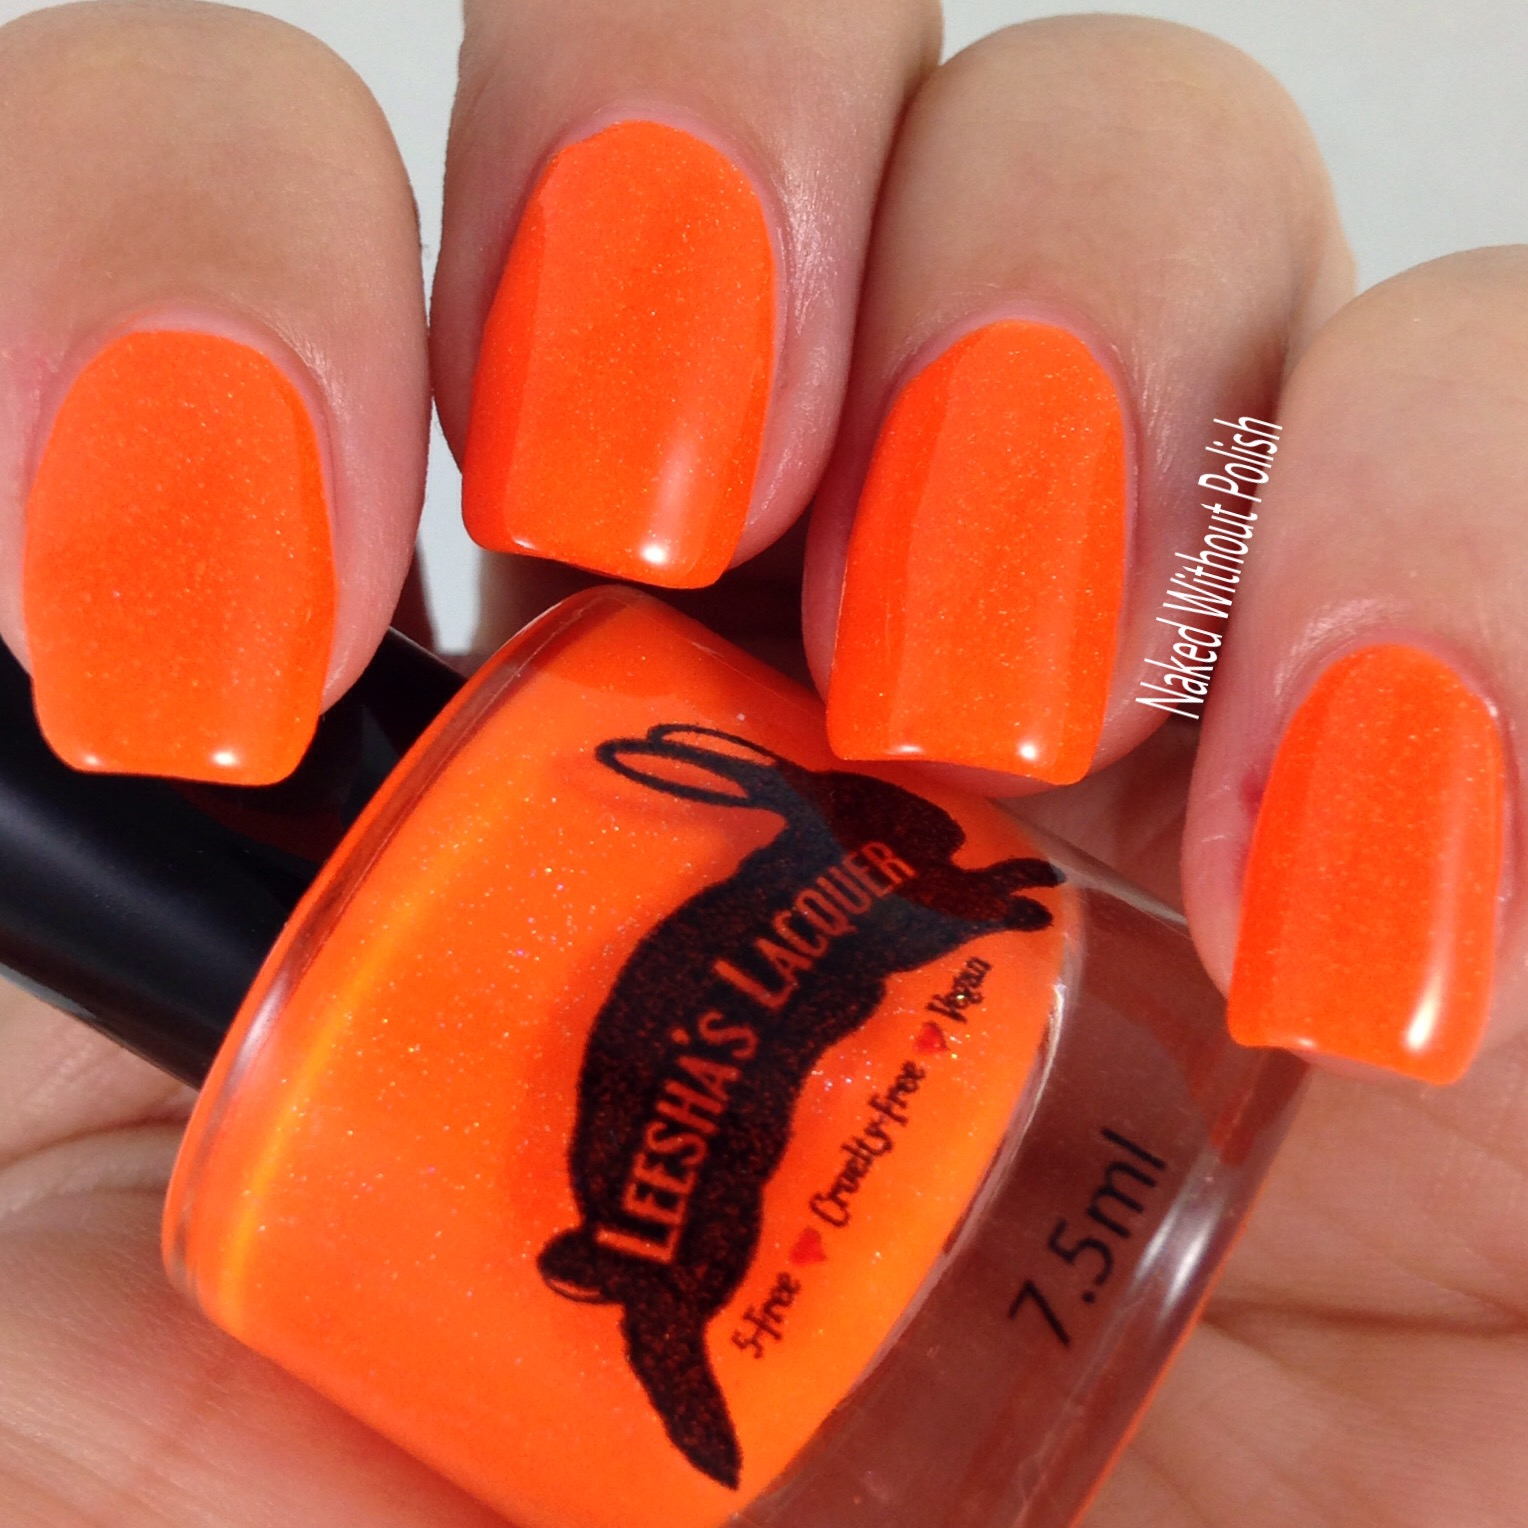 Leeshas-Lacquer-Girl-Look-How-Orange-You-Look-6